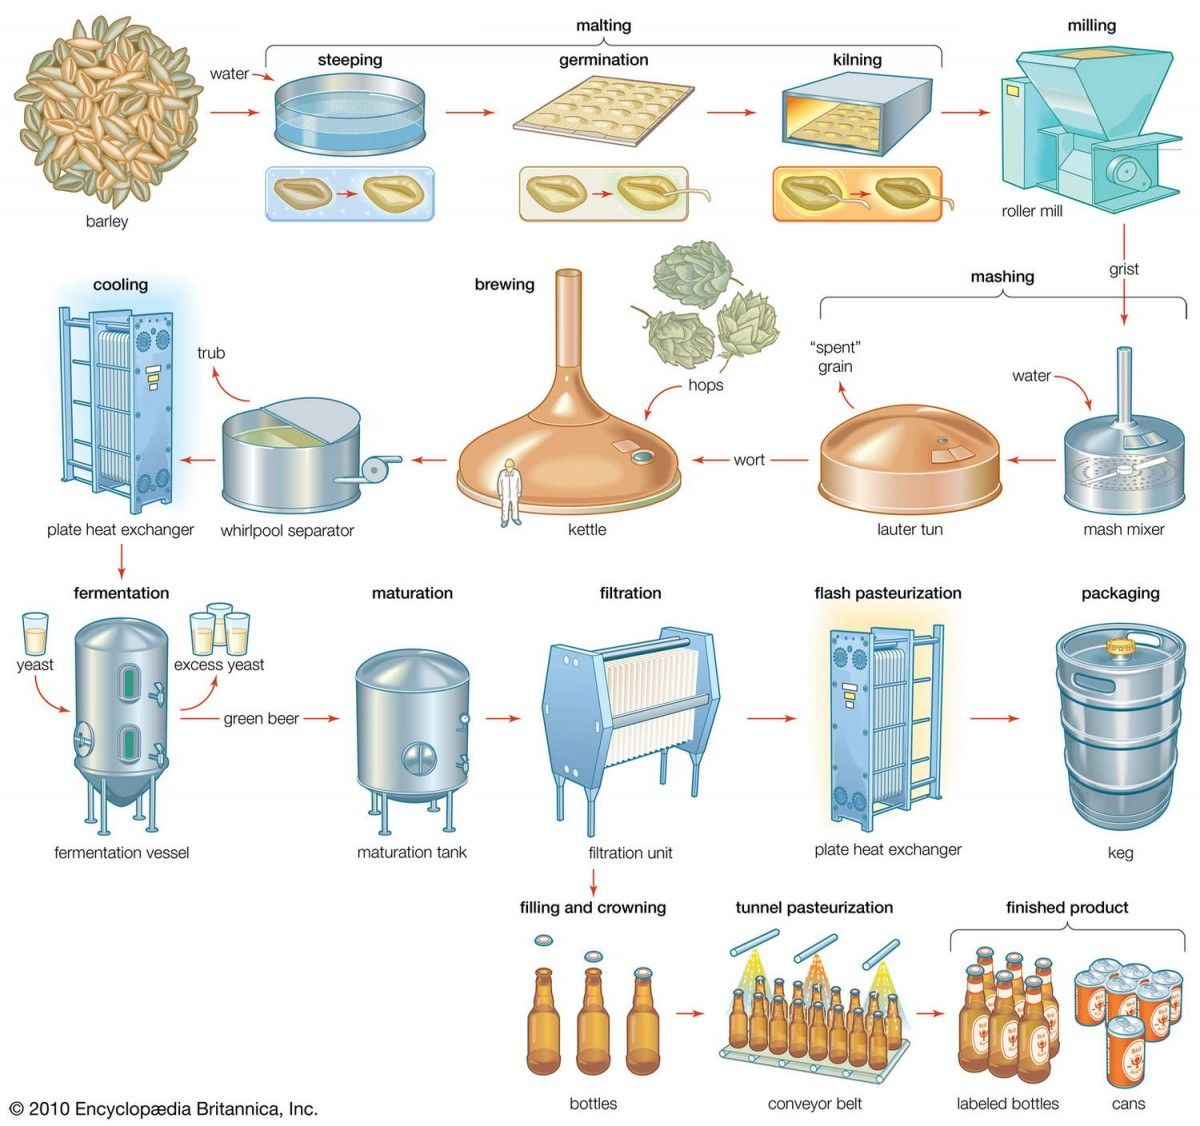 The best beer process flow chart malting and brewing beers a nice commercial brewing process diagram pooptronica